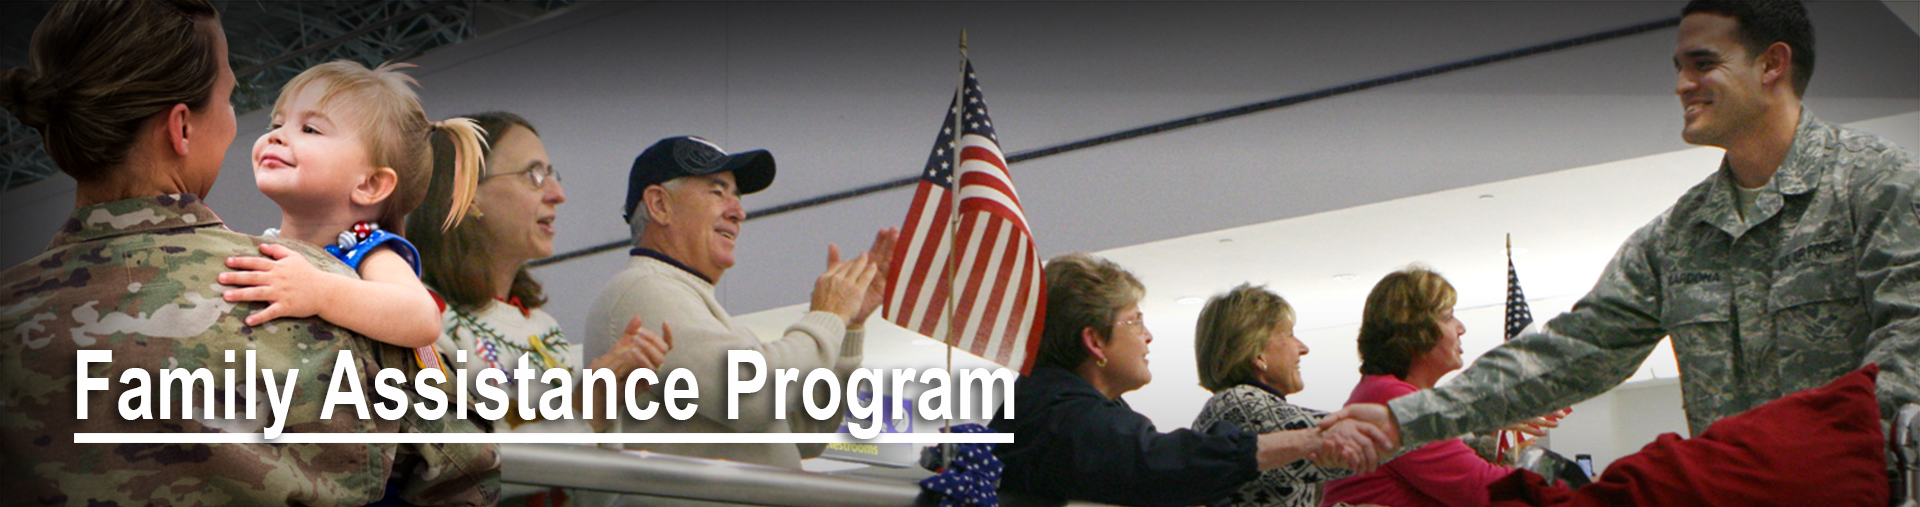 Header image for Family Assistance Program page